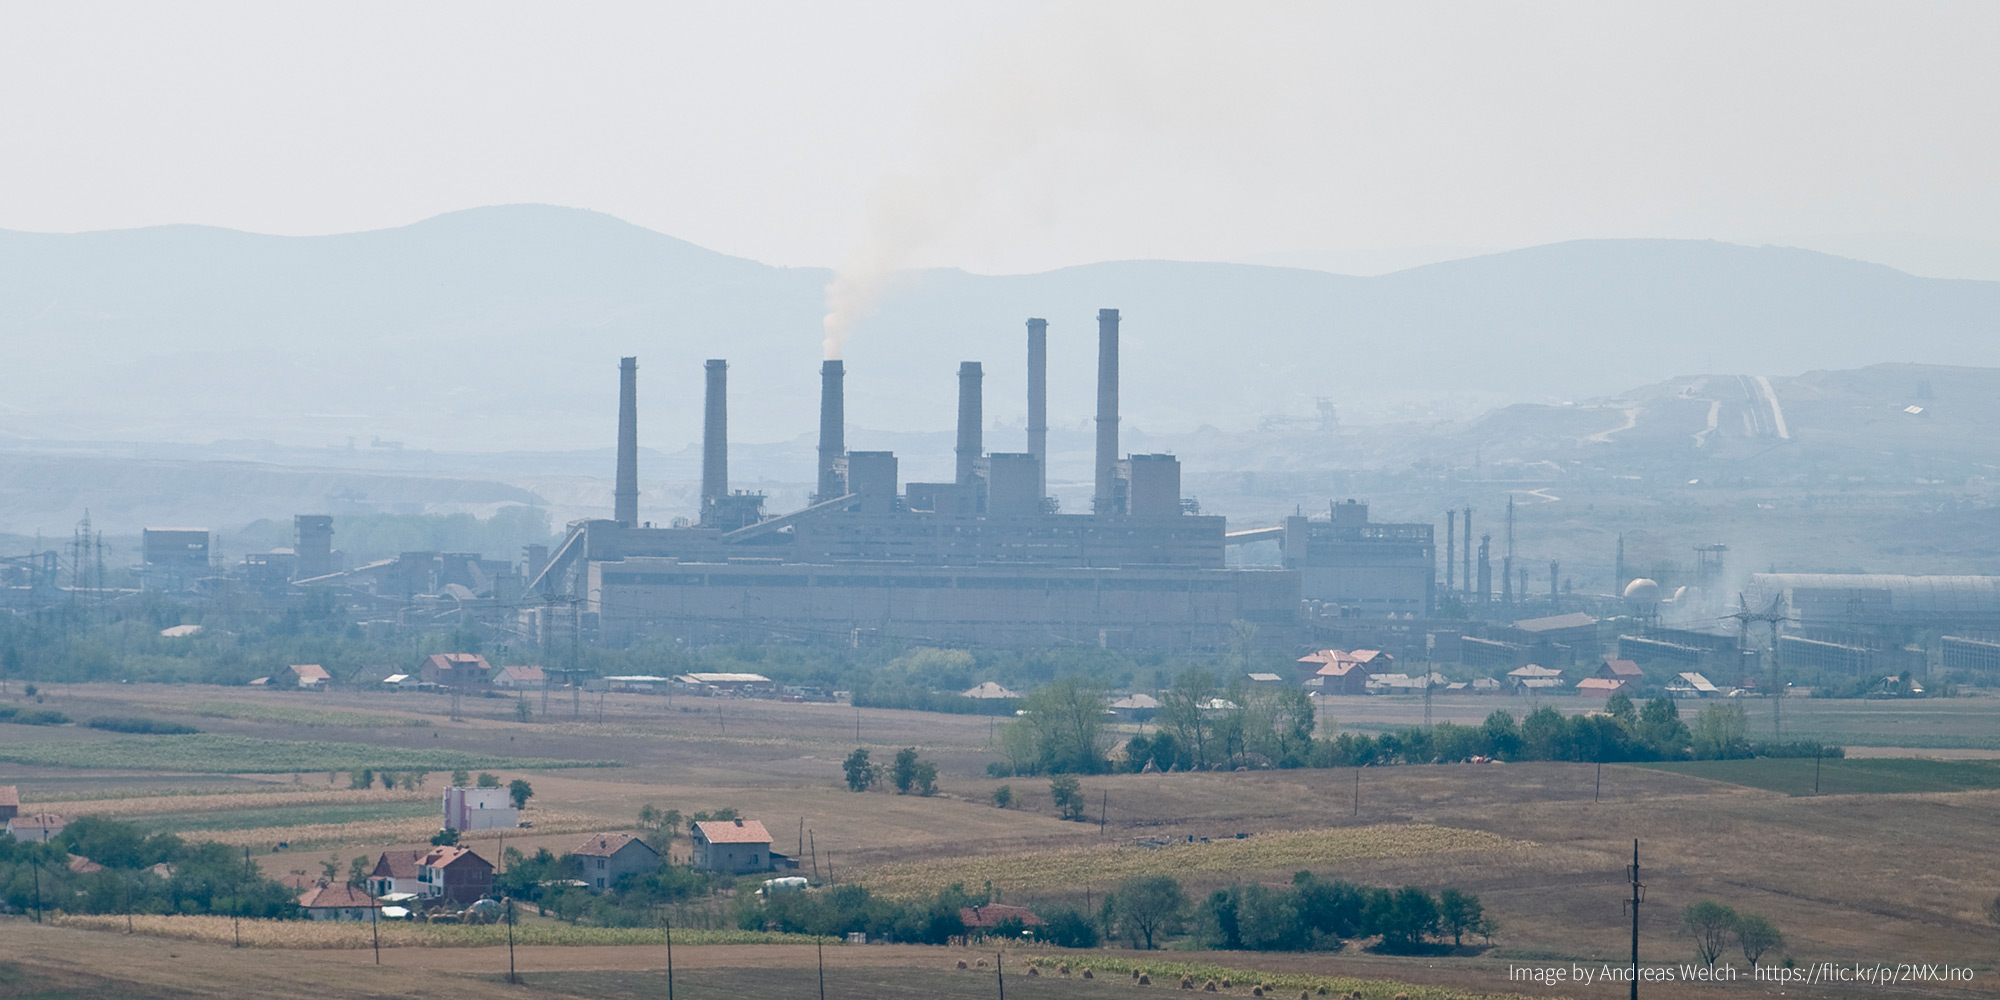 A coal power plant with 3 smoke stacks surrounded by settlements, all seen from a distance.